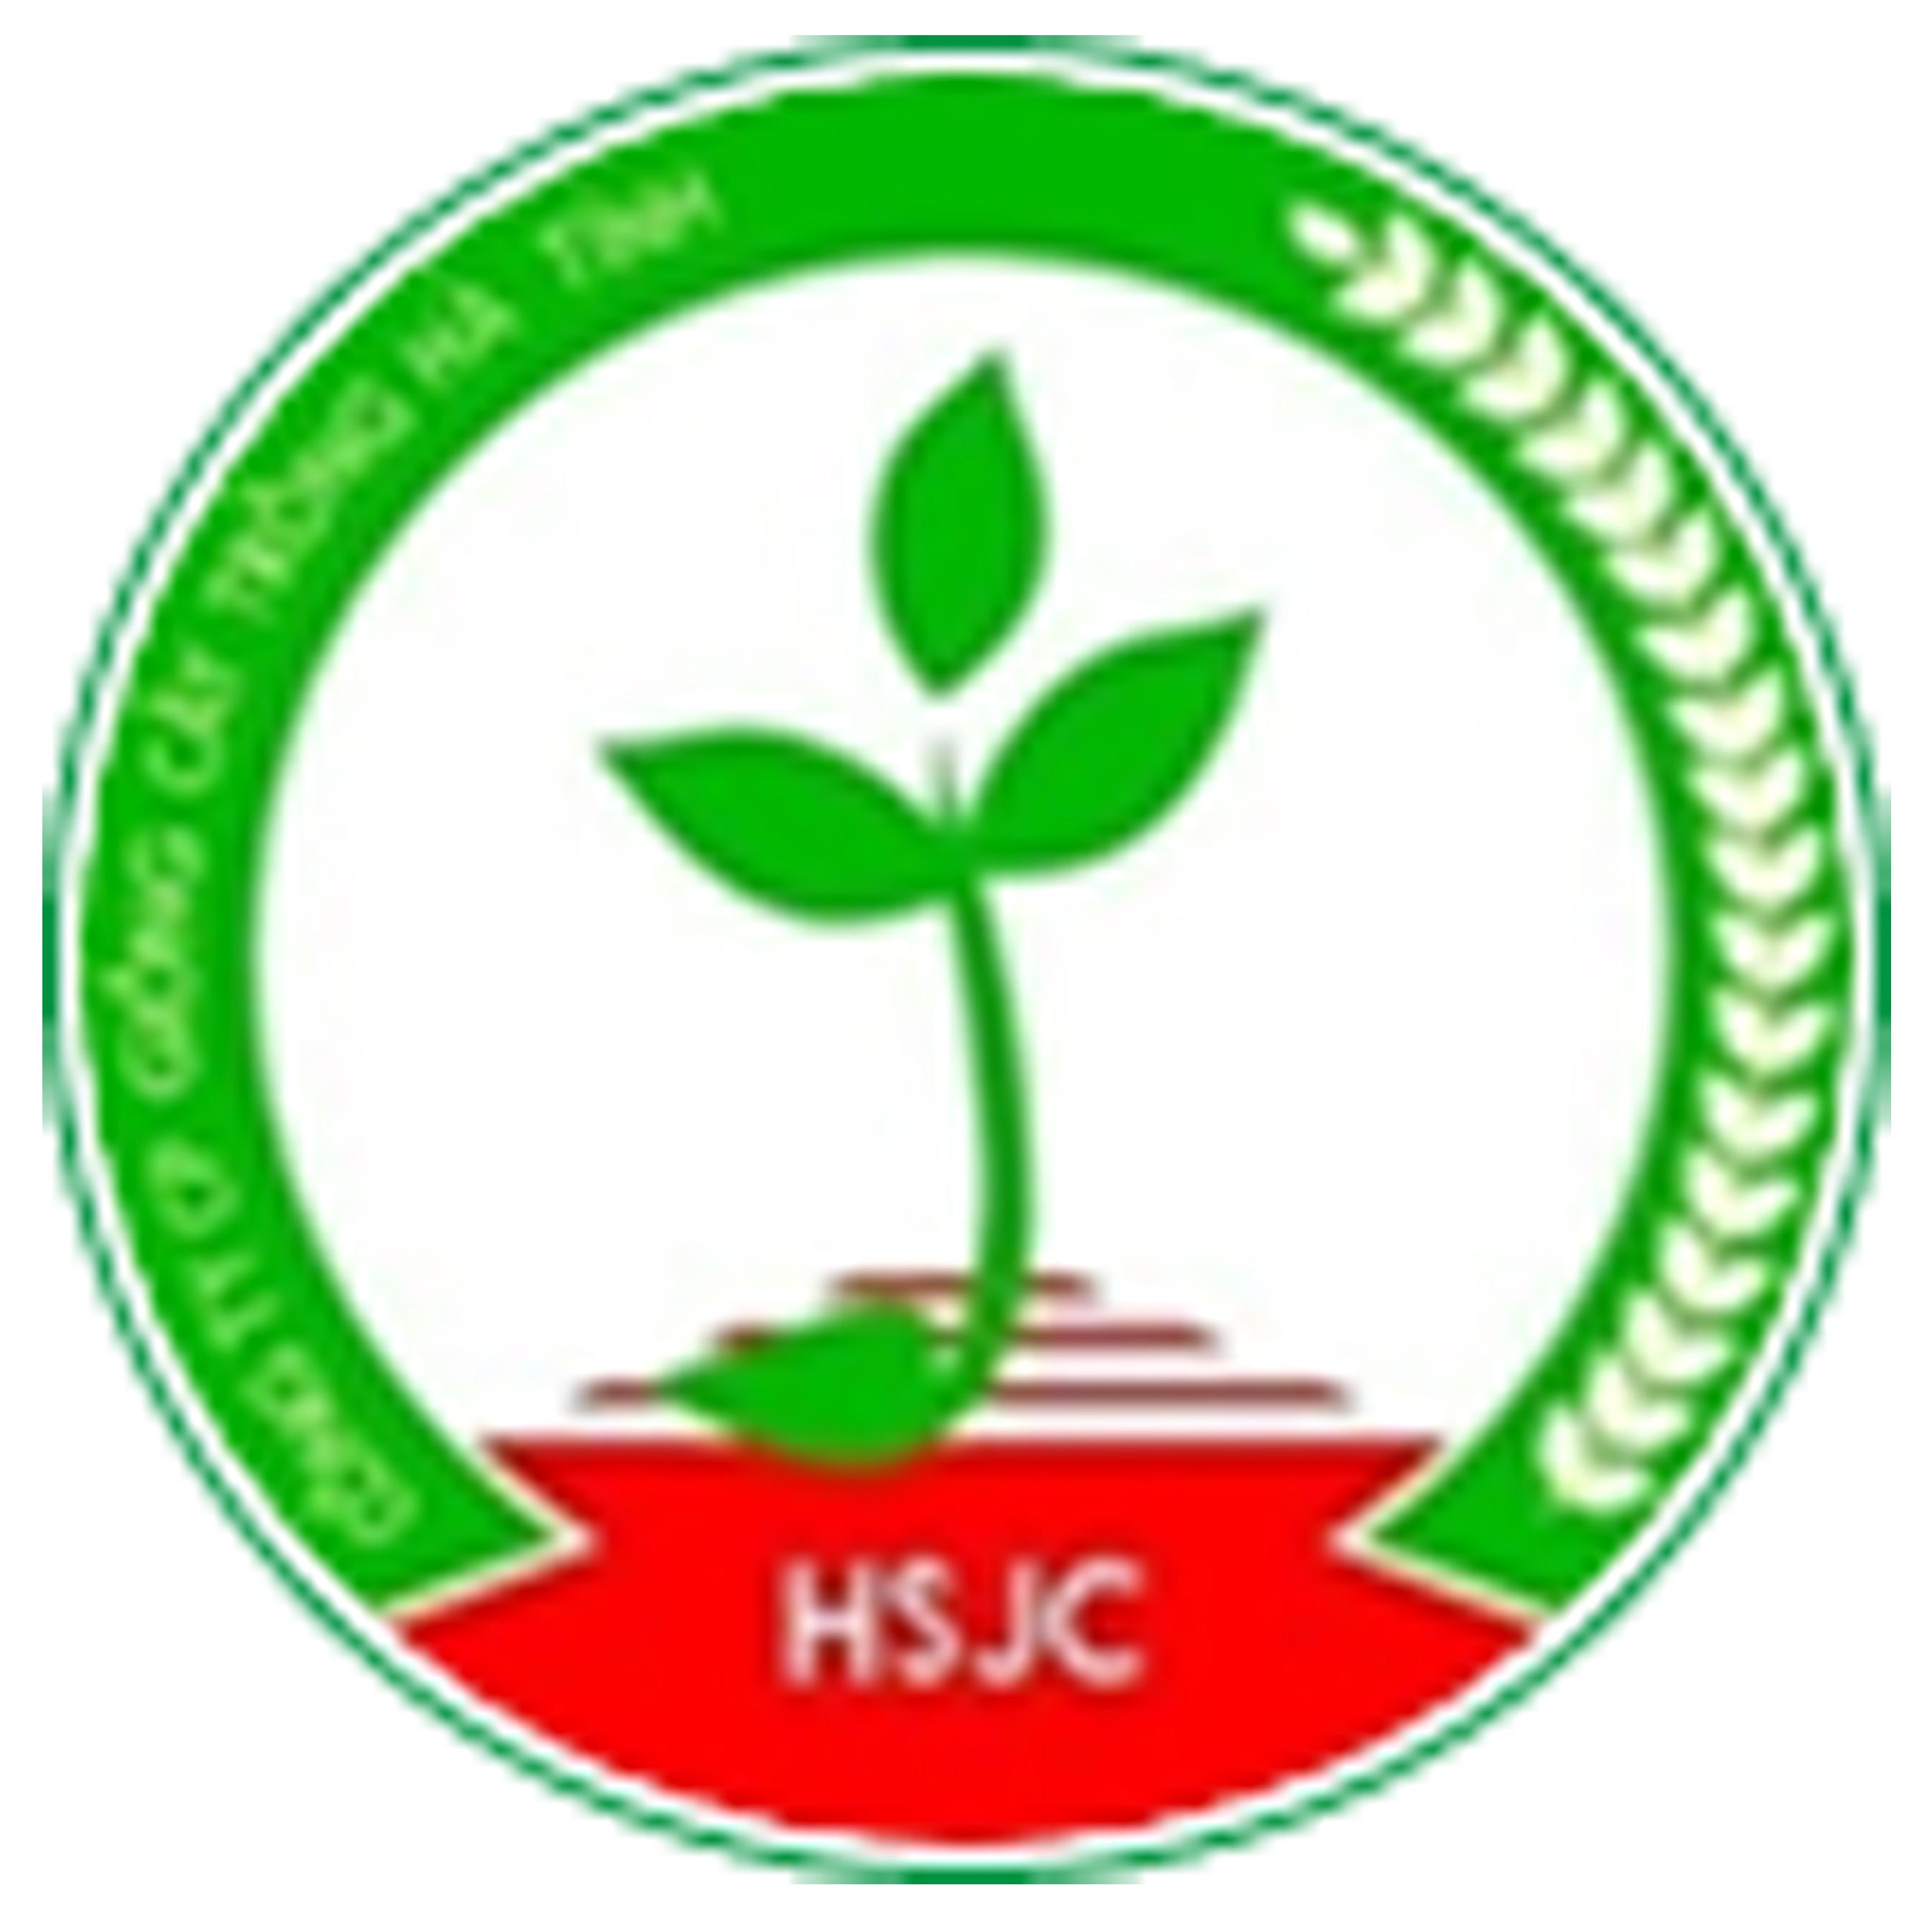 HA TINH SEED JOINT STOCK COMPANY